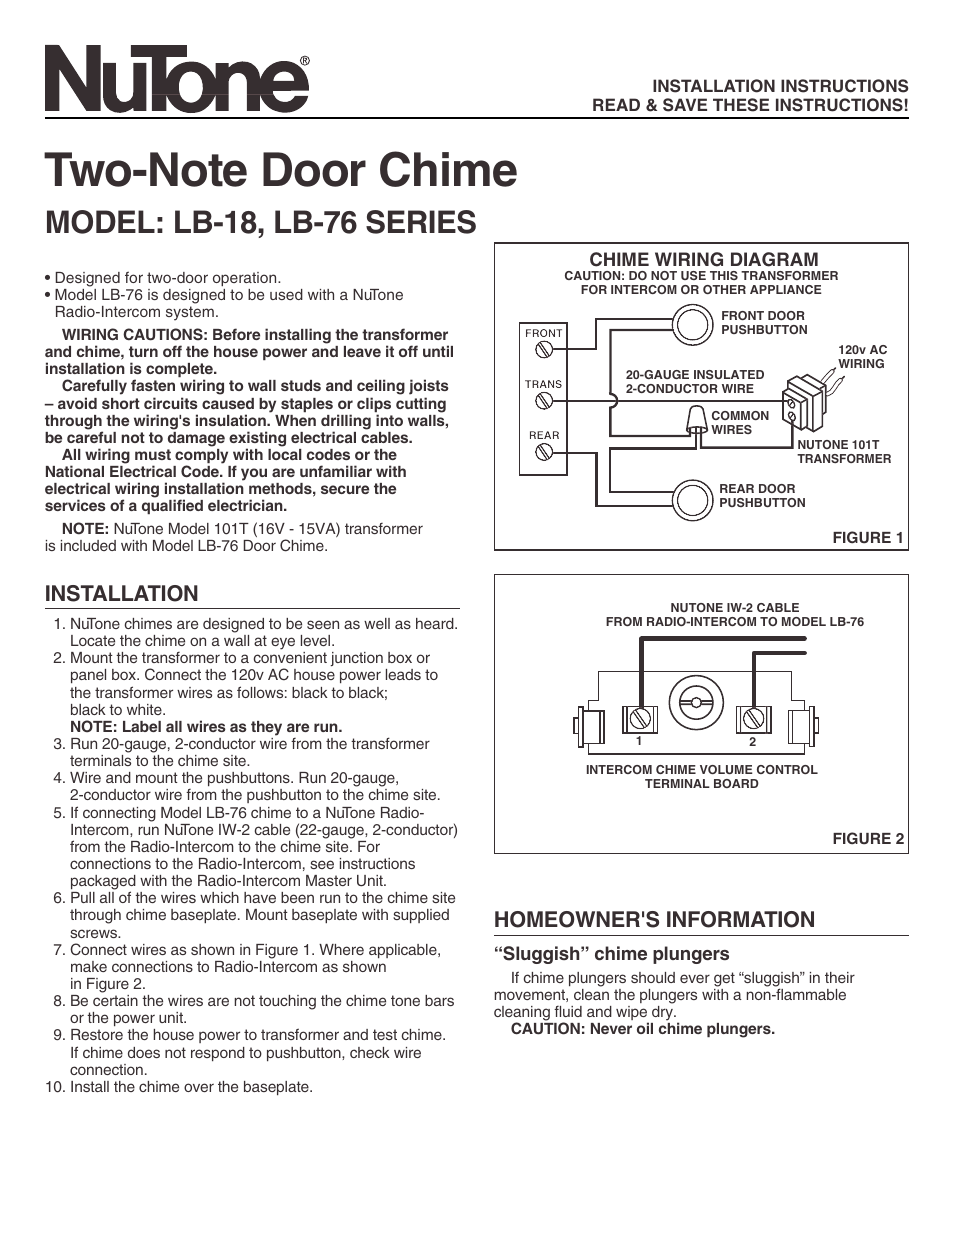 nutone two note door chime lb 76 page1 nutone two note door chime lb 76 user manual 2 pages also for nutone doorbell intercom wiring diagram at reclaimingppi.co